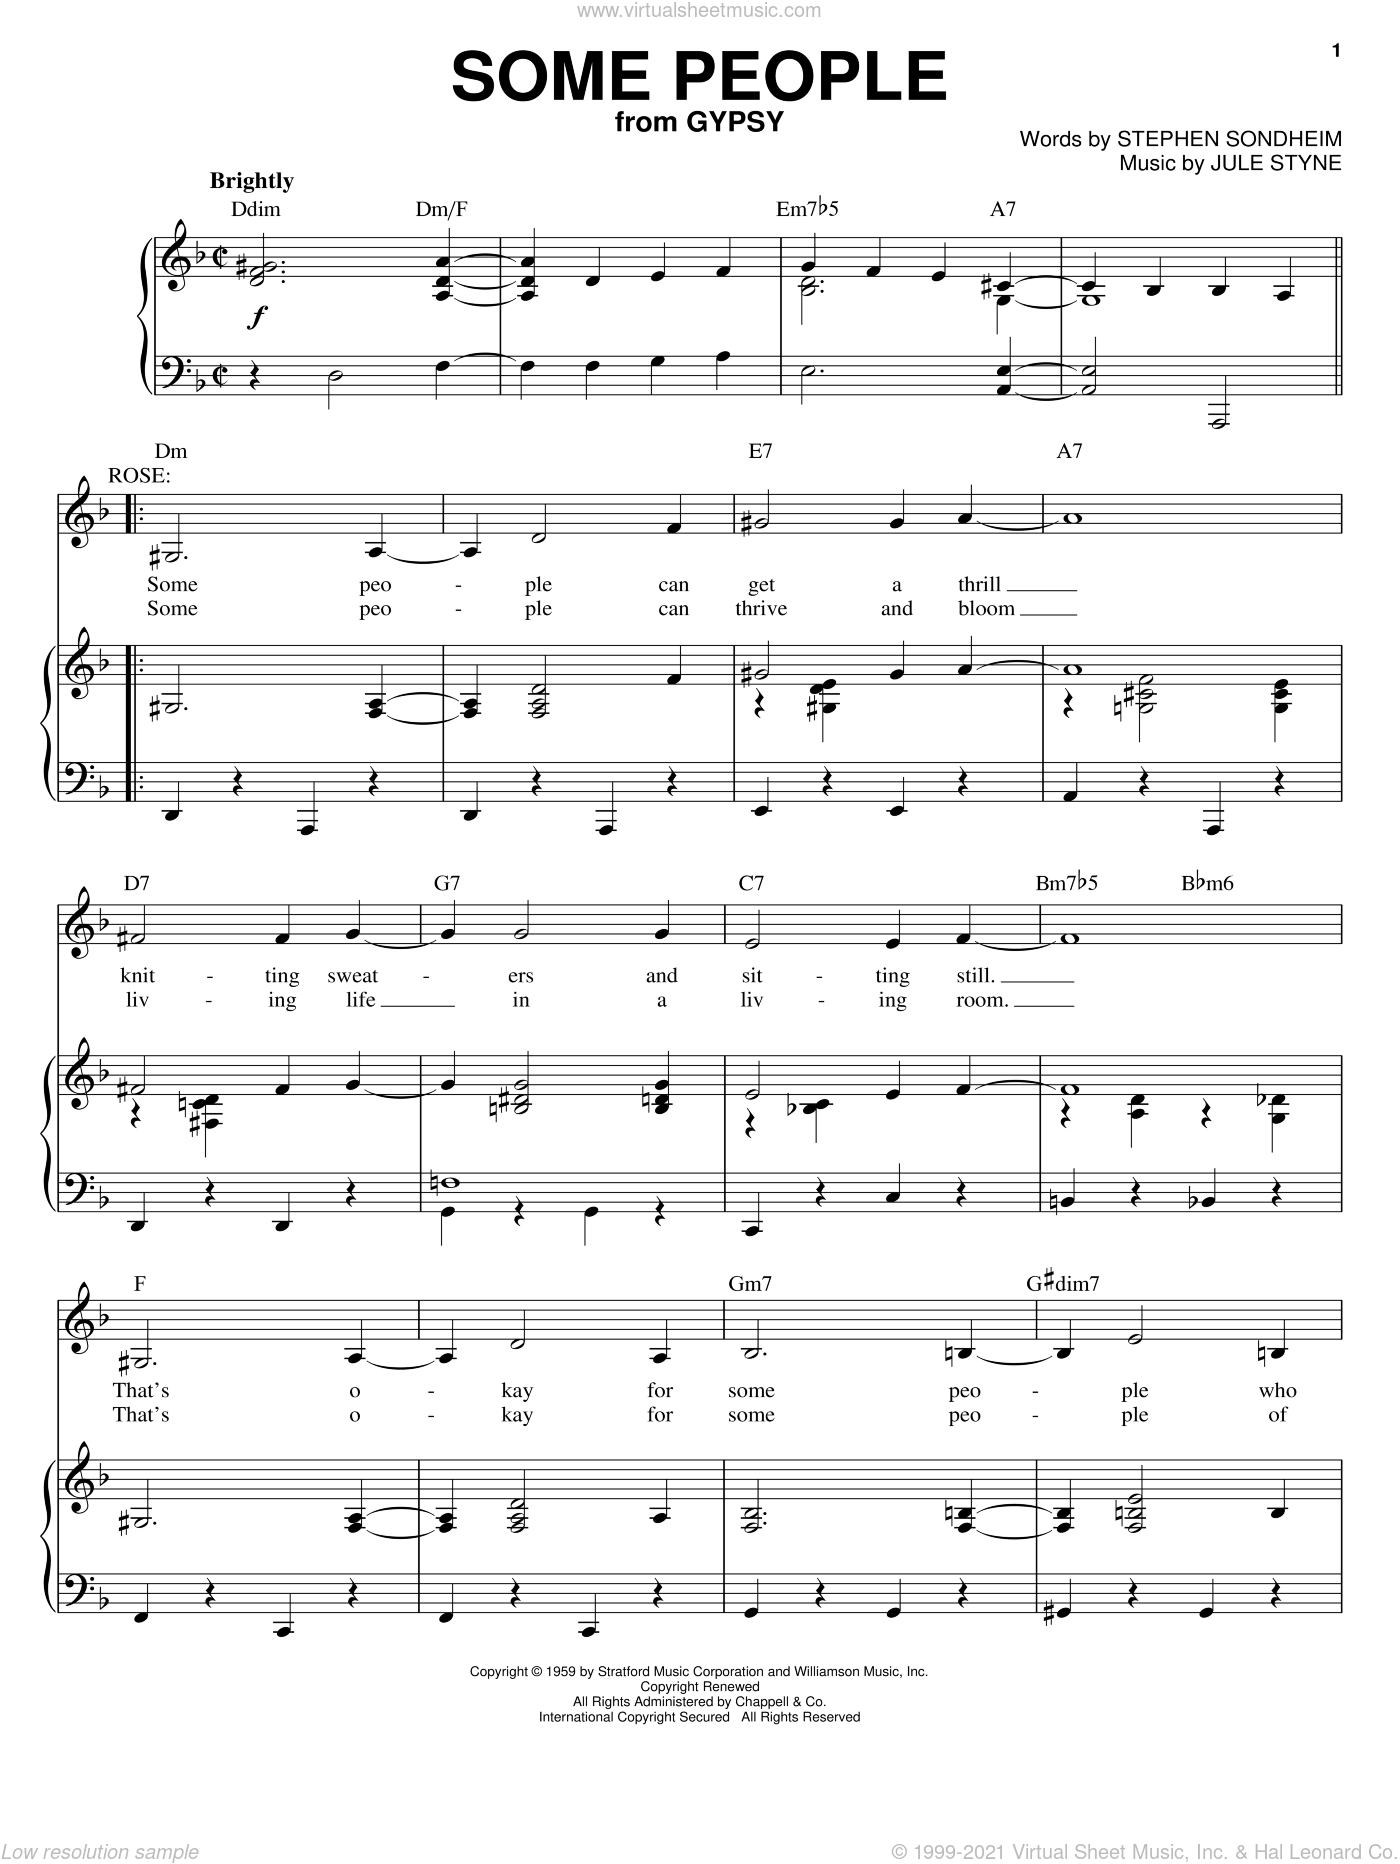 Some People sheet music for voice and piano by Stephen Sondheim, Gypsy (Musical) and Jule Styne, intermediate skill level